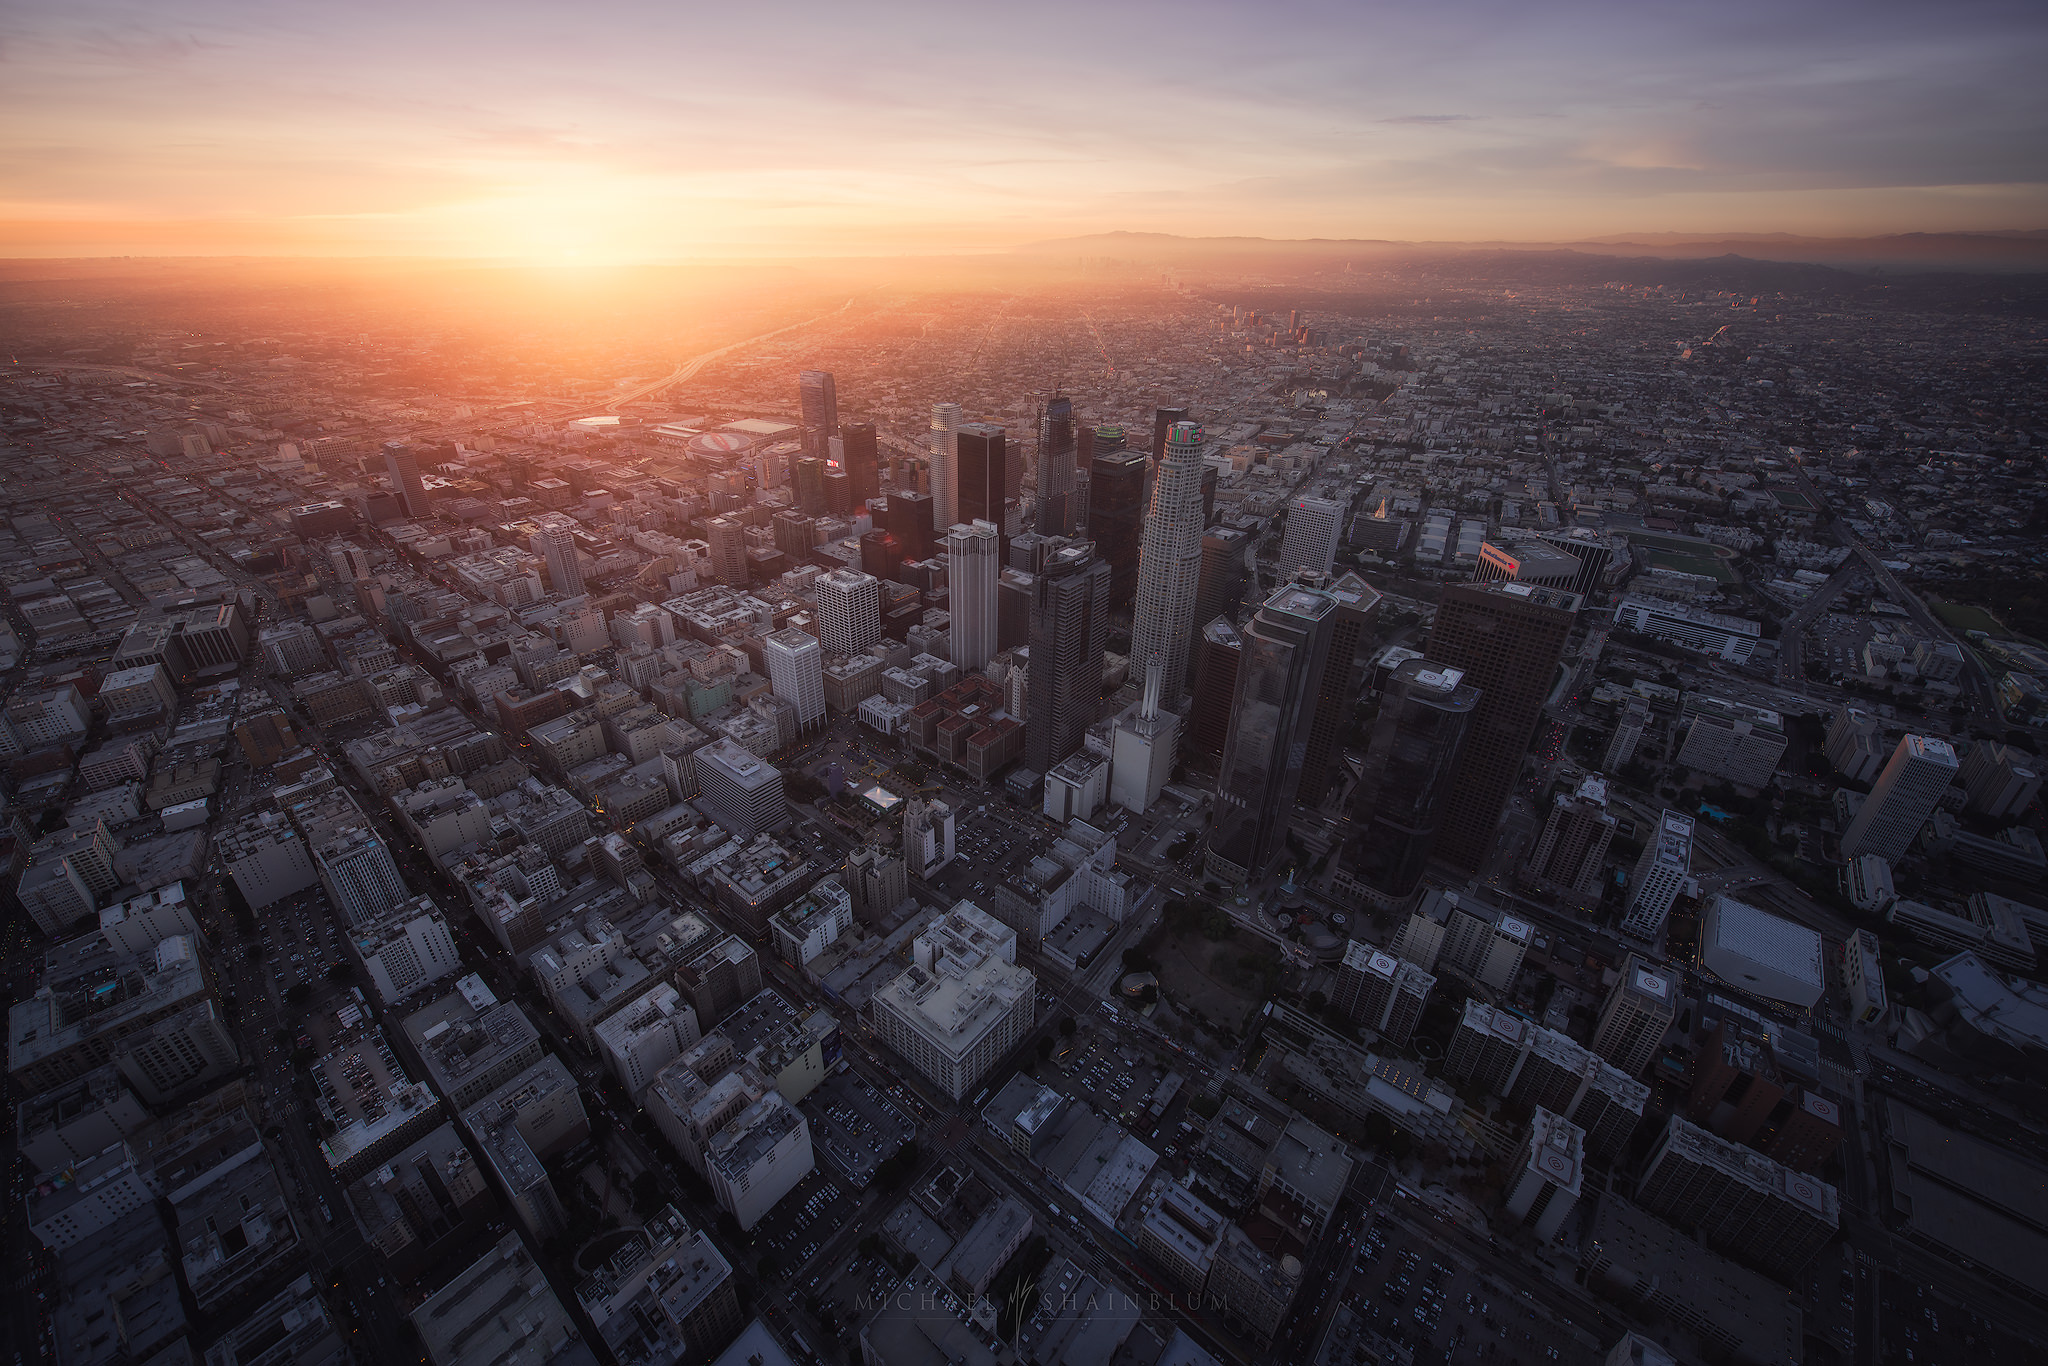 Los Angeles Aerial Photography and Aerial Video